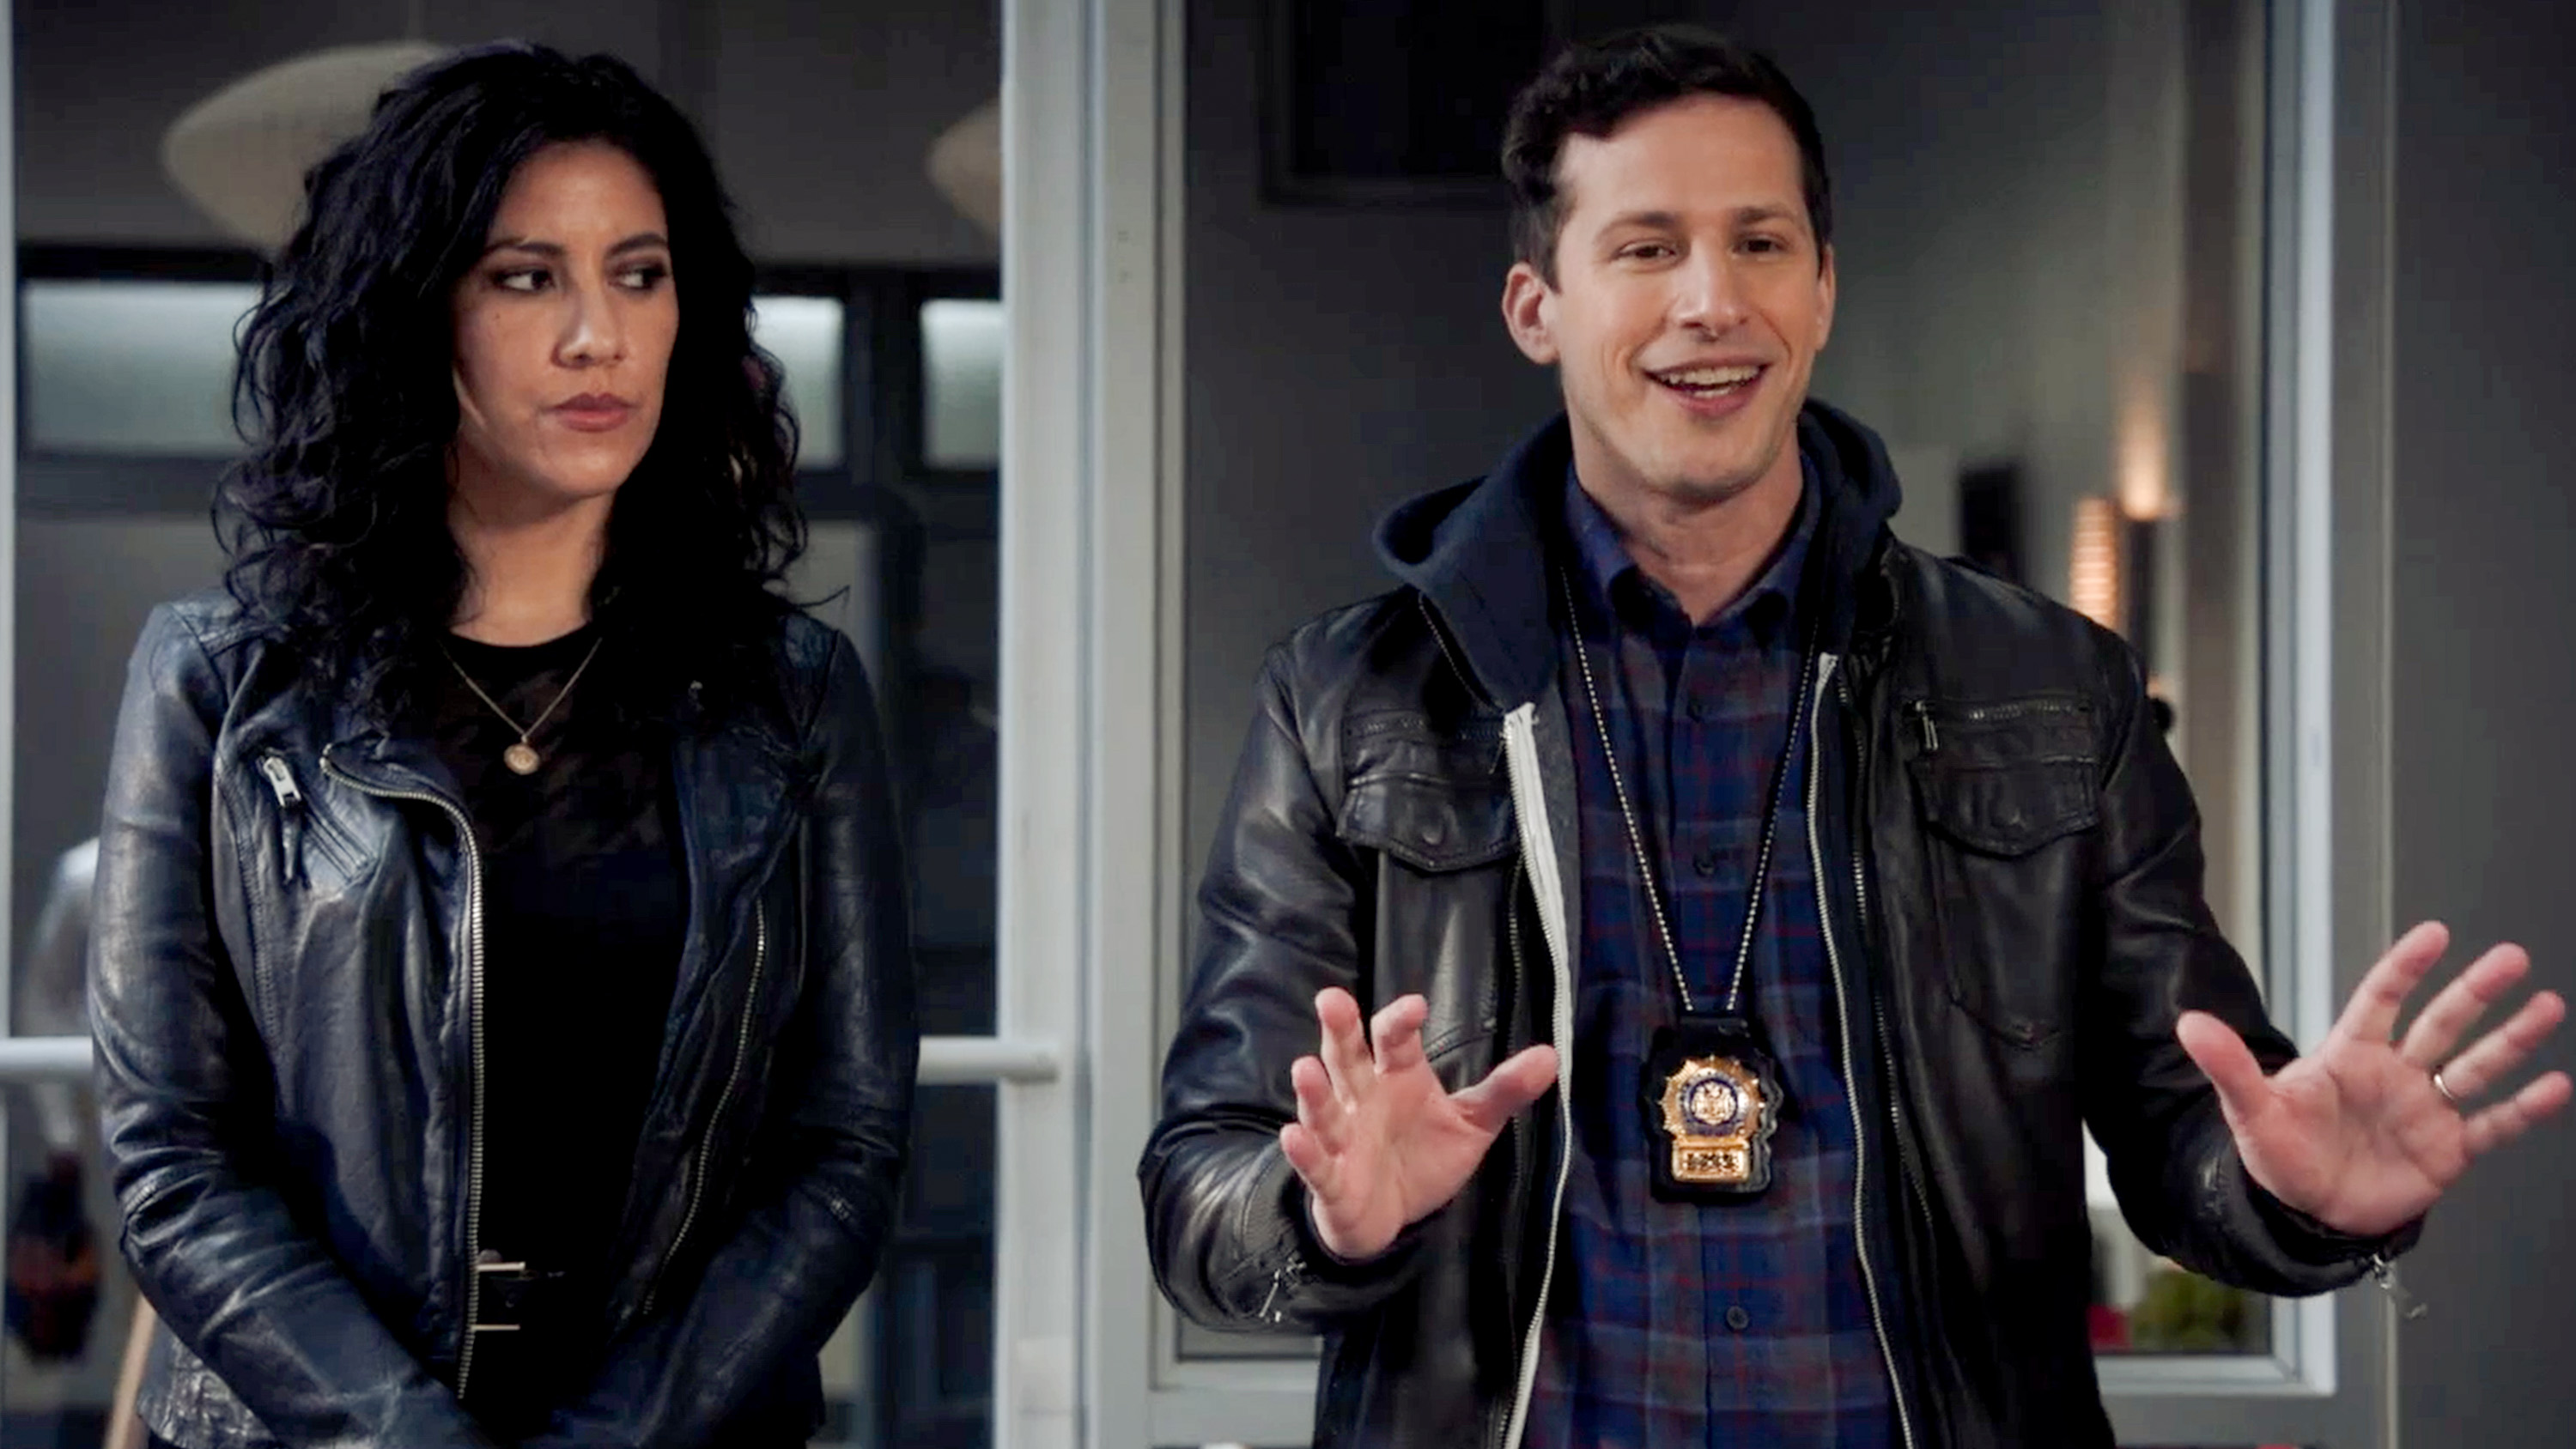 Rosa and Jake interrogate a suspect, as Jake tries to make a point.